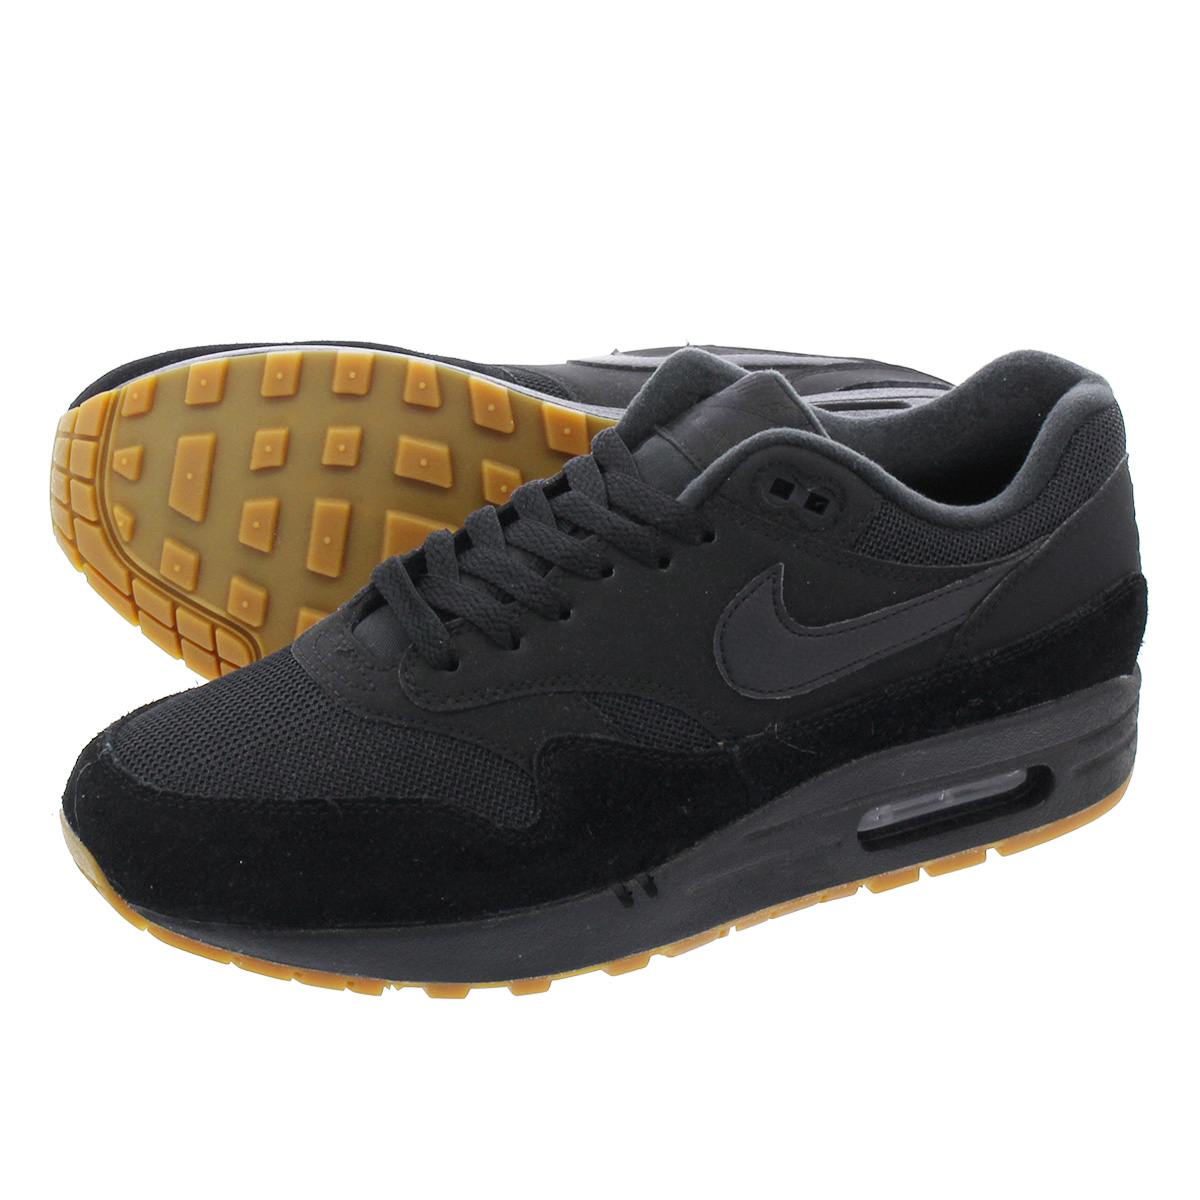 separation shoes d70cb 31e21 NIKE AIR MAX 1 Kie Ney AMAX 1 BLACK BLACK BLACK GUM MEDIUM BROWN ah8145-007